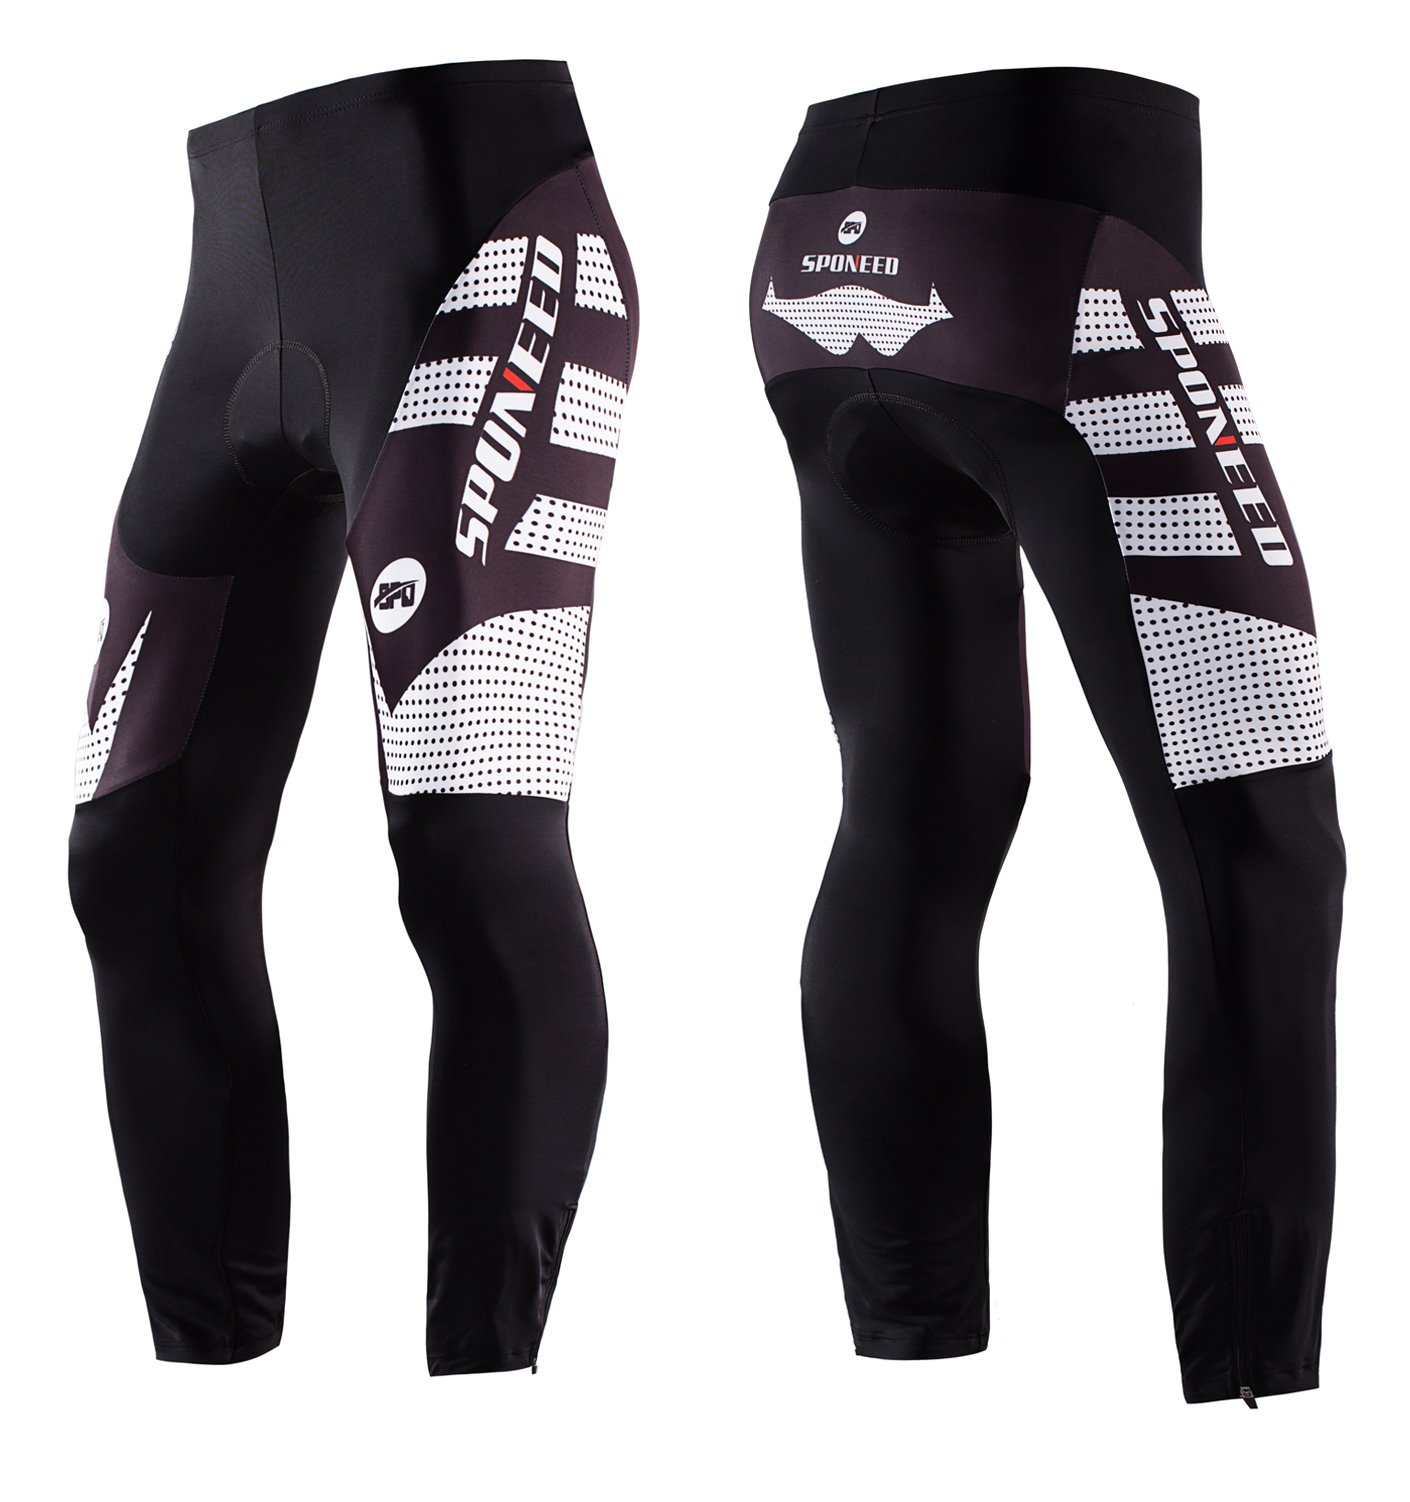 d687bce0a sponeed Men s Bicycle Pants 4D Padded Road Cycling Tights MTB Leggings  Outdoor Cyclist Riding Bike Wear